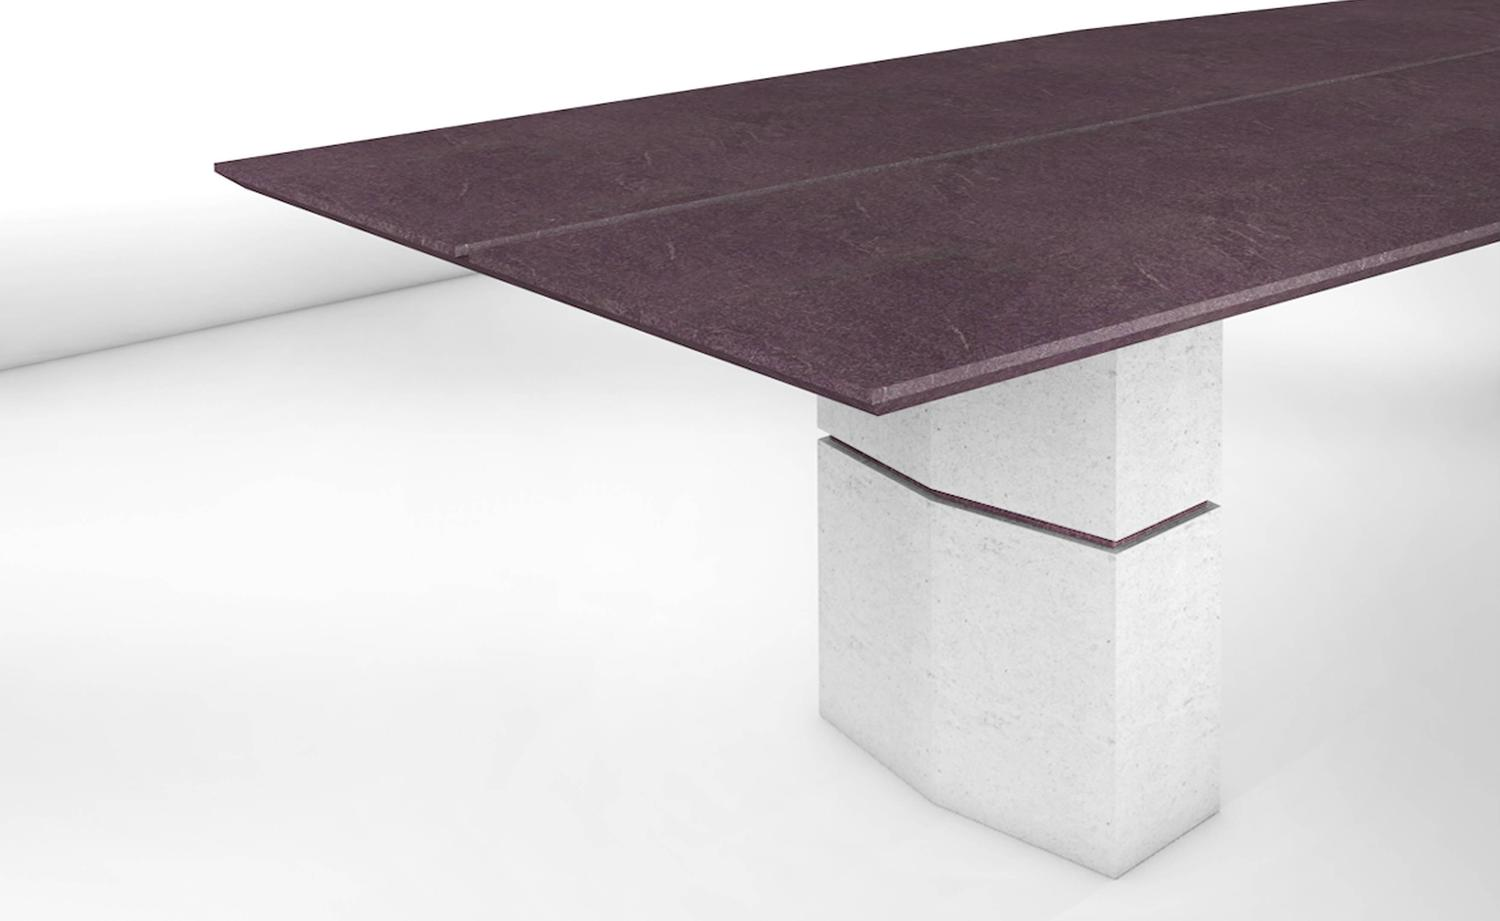 Fr d ric saulou unique dining table in purple slate for for Unique dining tables for sale